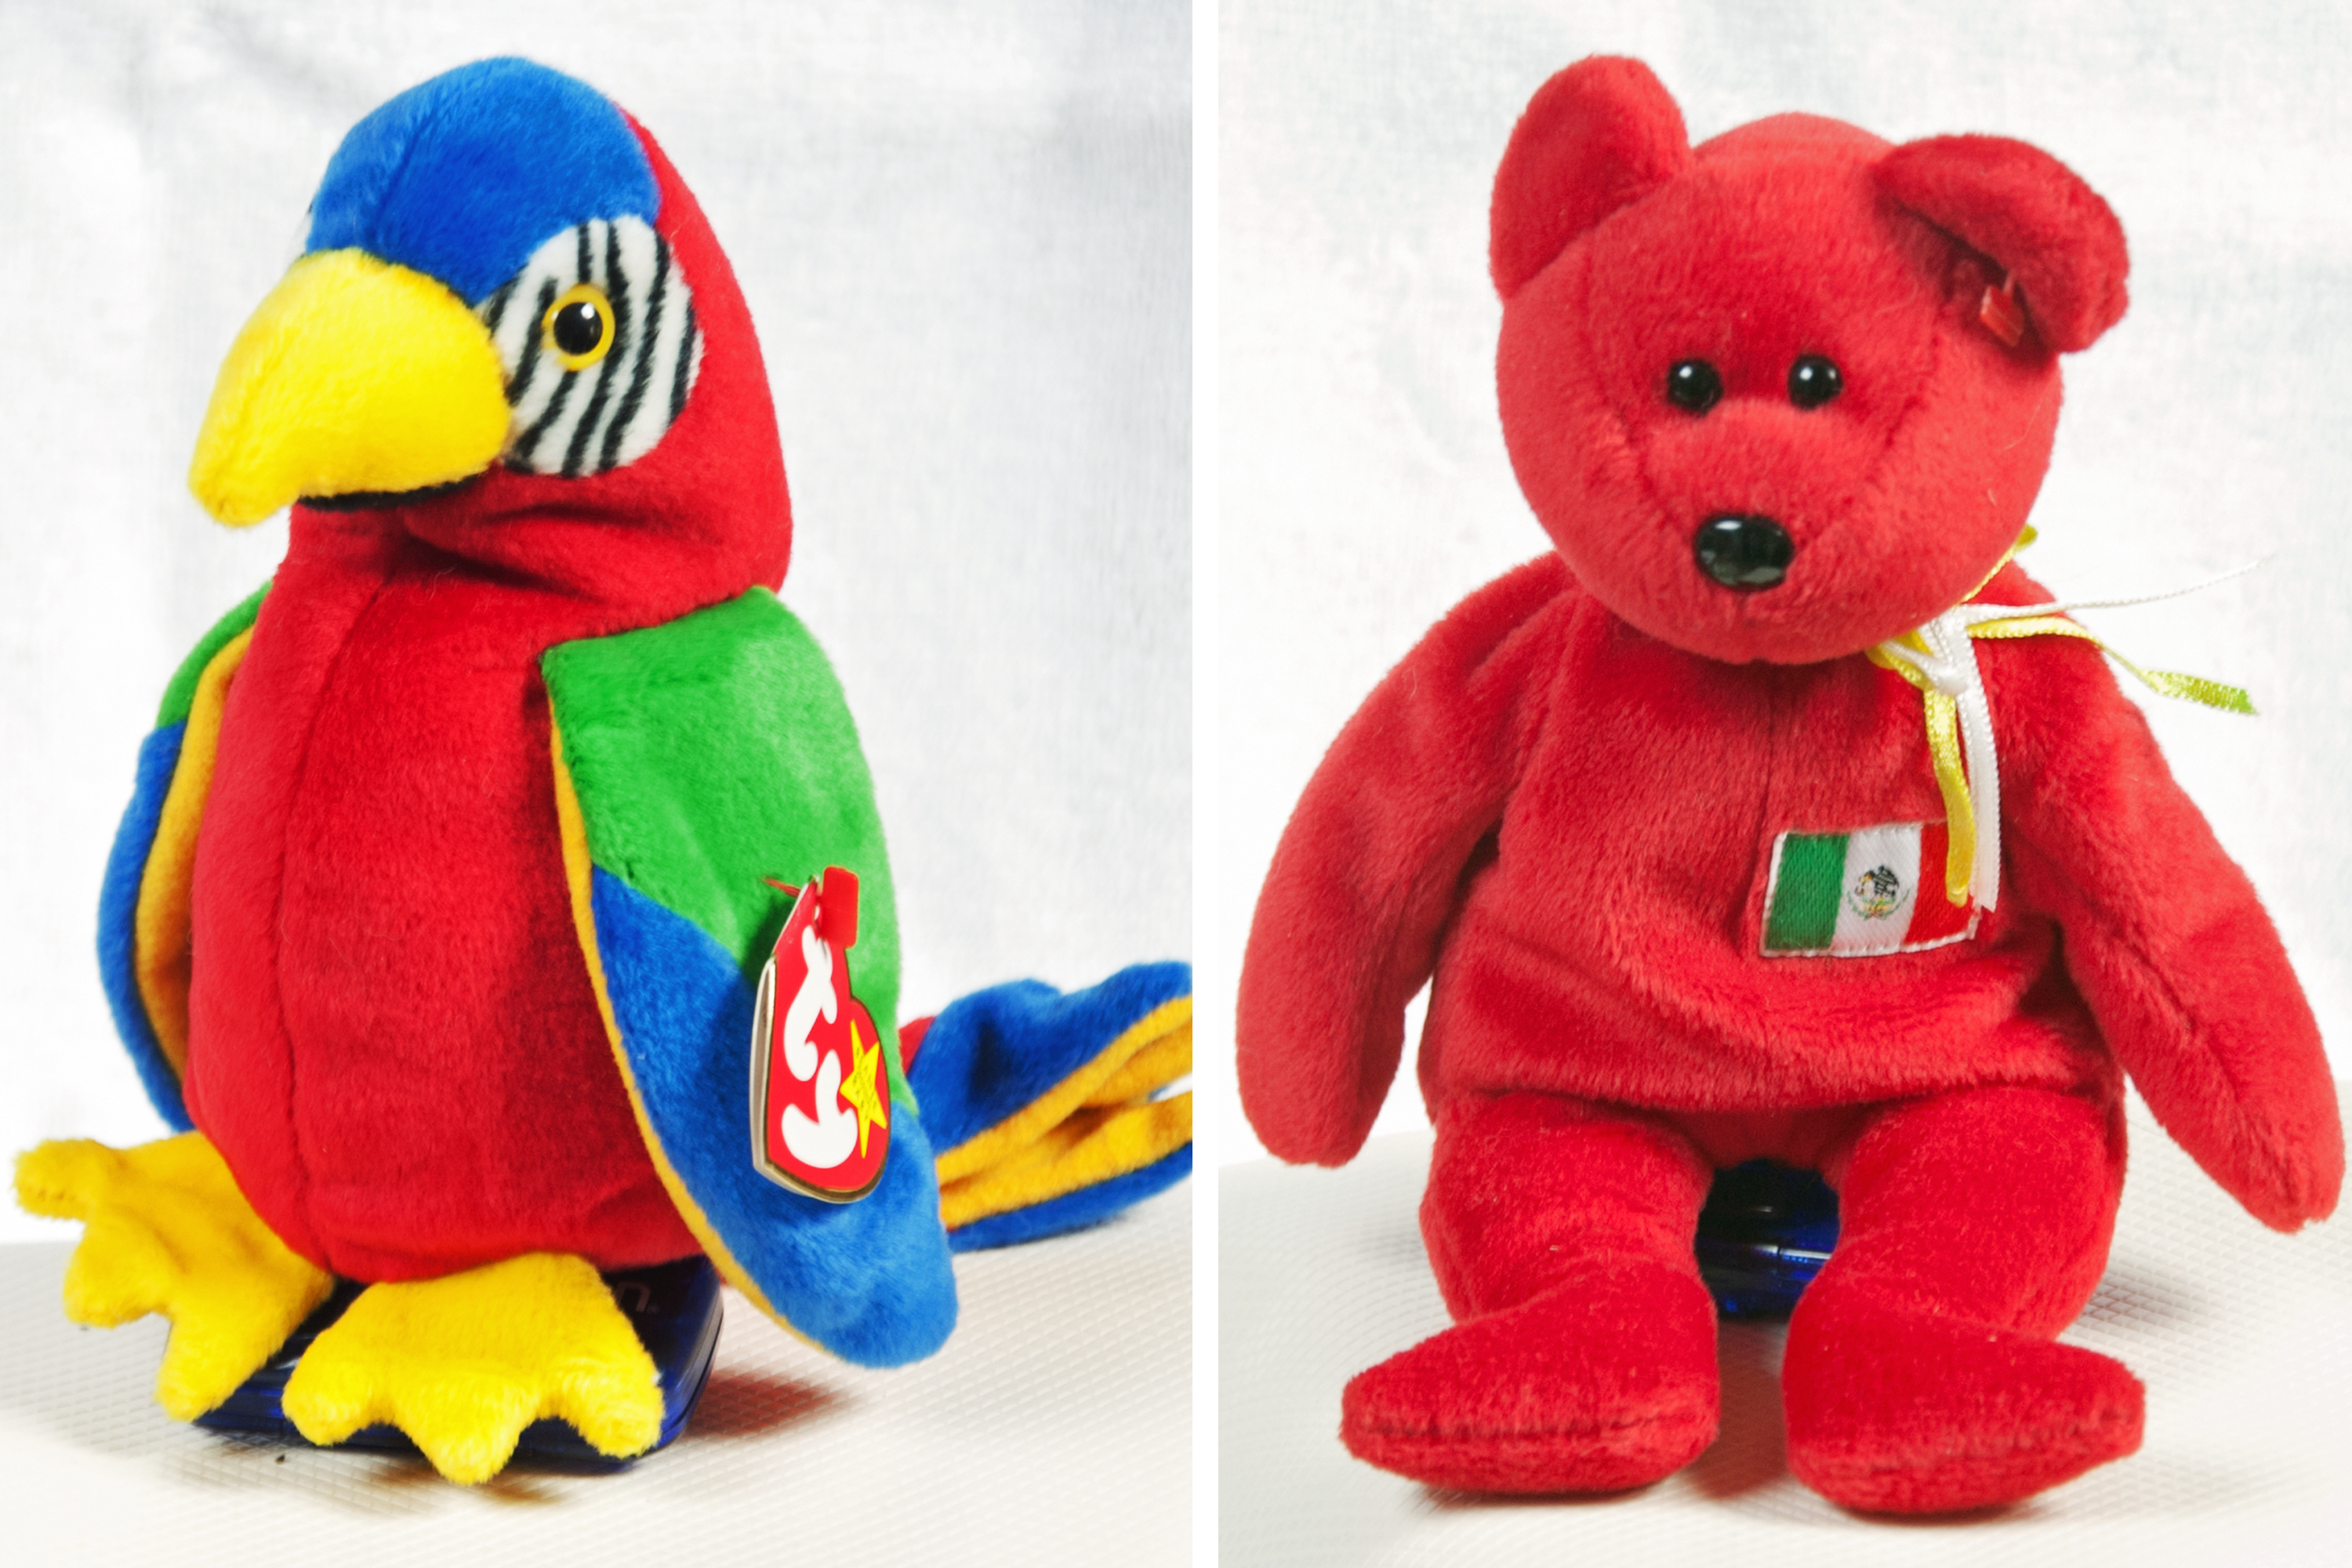 Ebay Beanie Babies Selling Price Apartment Therapy